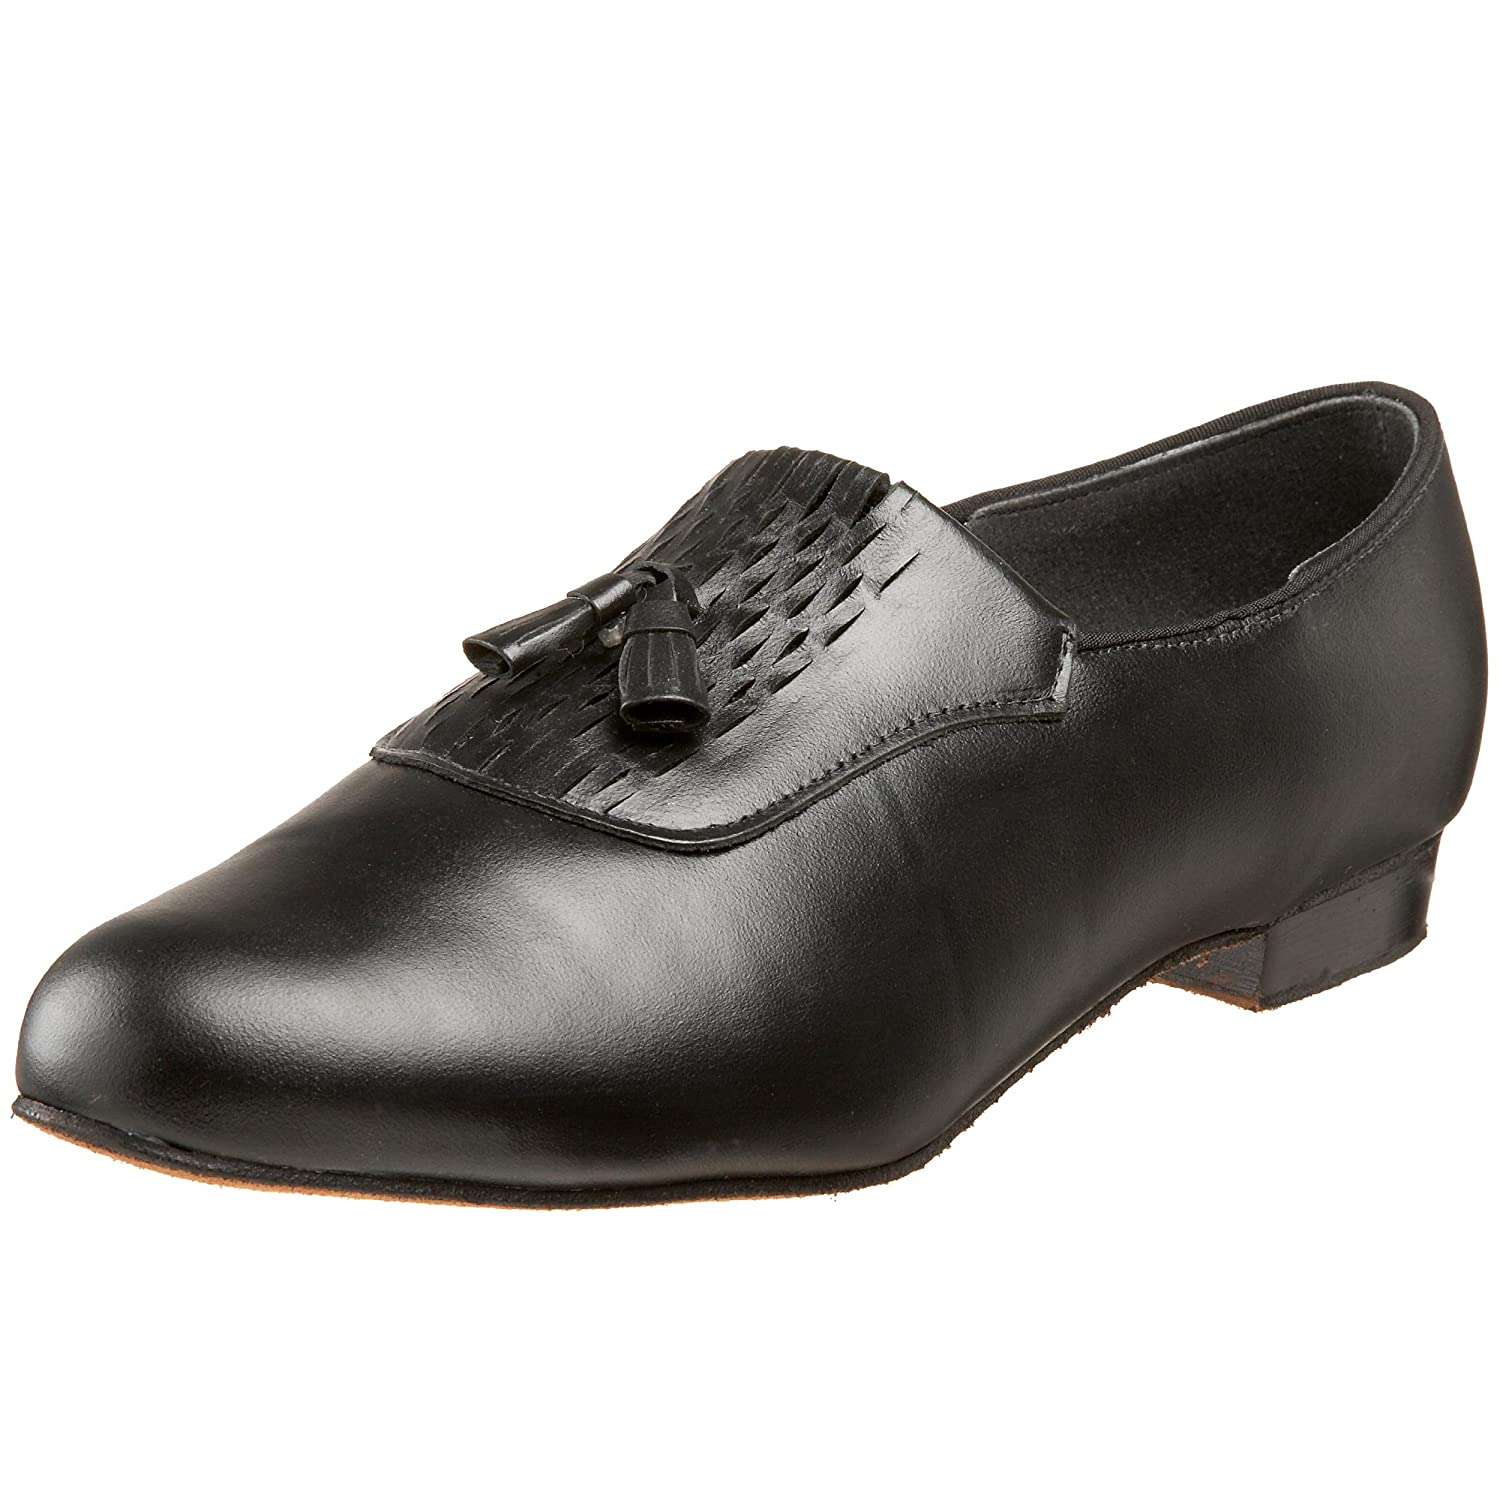 Men's Swing Dance Clothing, Vintage Dance Clothes  Mens Waldorf Tasseled Dance Loafer Tic-Tac-Toes $106.00 AT vintagedancer.com